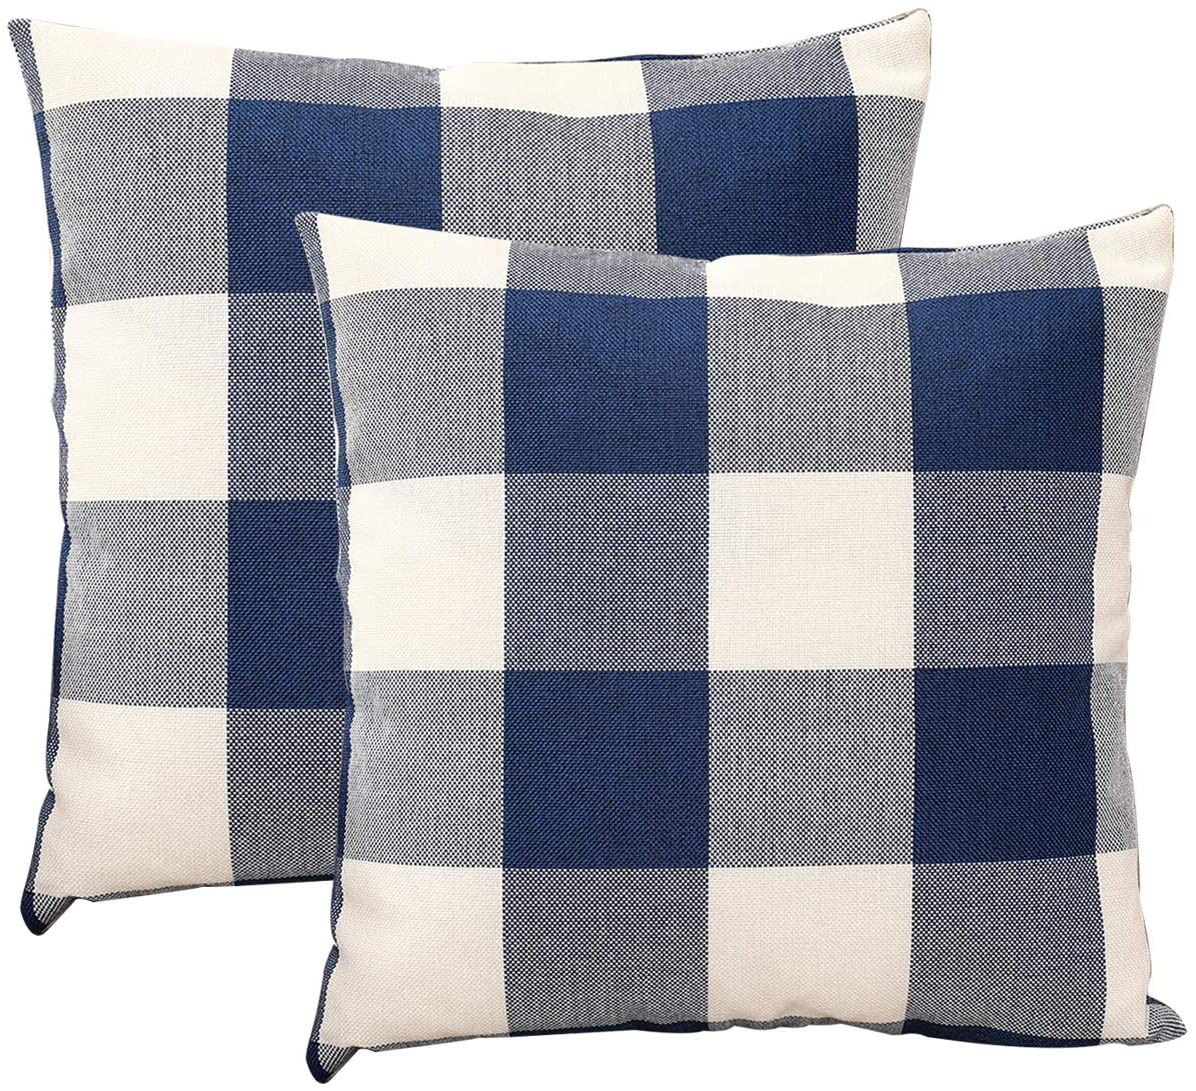 JES&MEDIS Pack of 2, Check Cotton Linen Decorative Square Throw Pillow Covers Cushion Case for Home Sofa Bedroom Office Car 50 X 50 cm (Navy Blue, 20